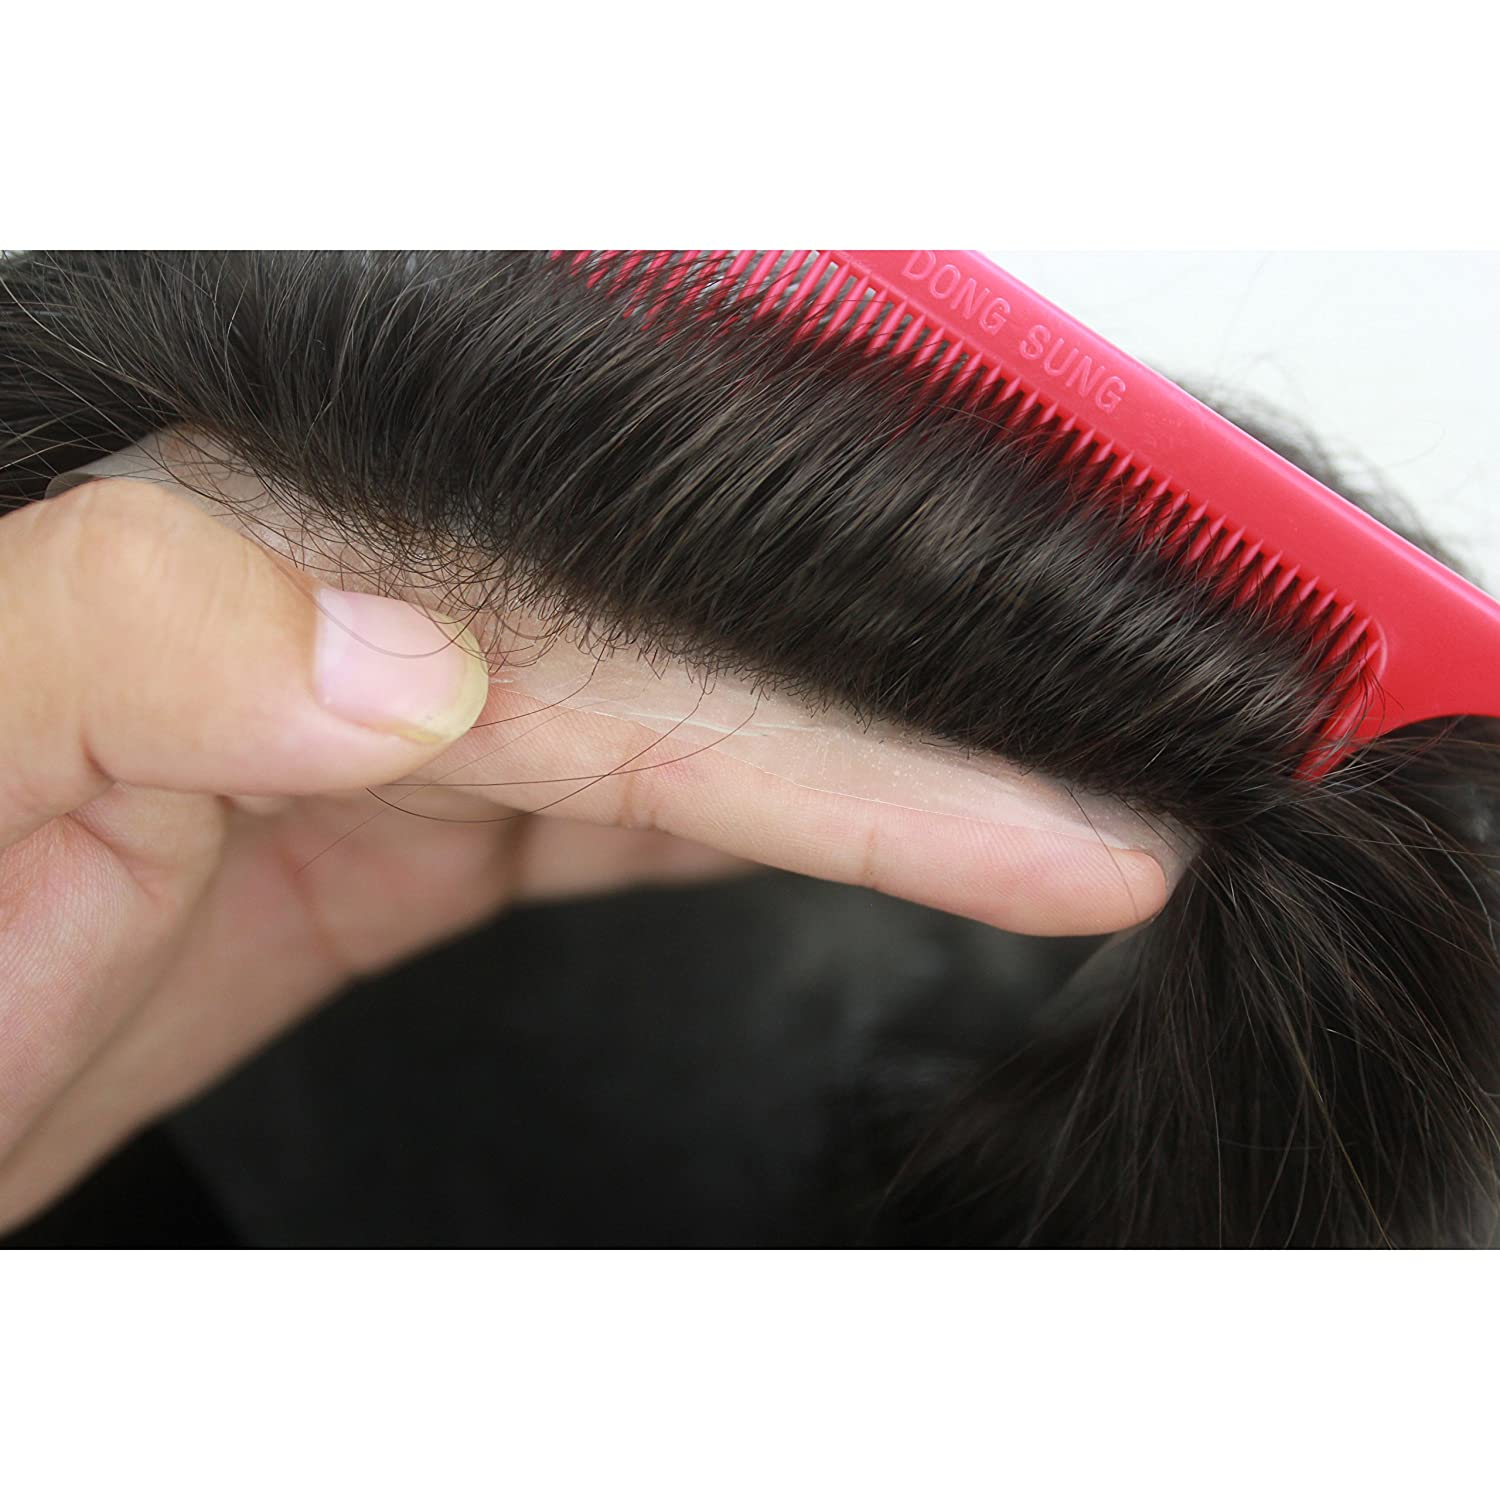 Lordhair Toupee for Men Thin Skin Toupee for Men Mens Hair Pieces Replacement System Jet Black...